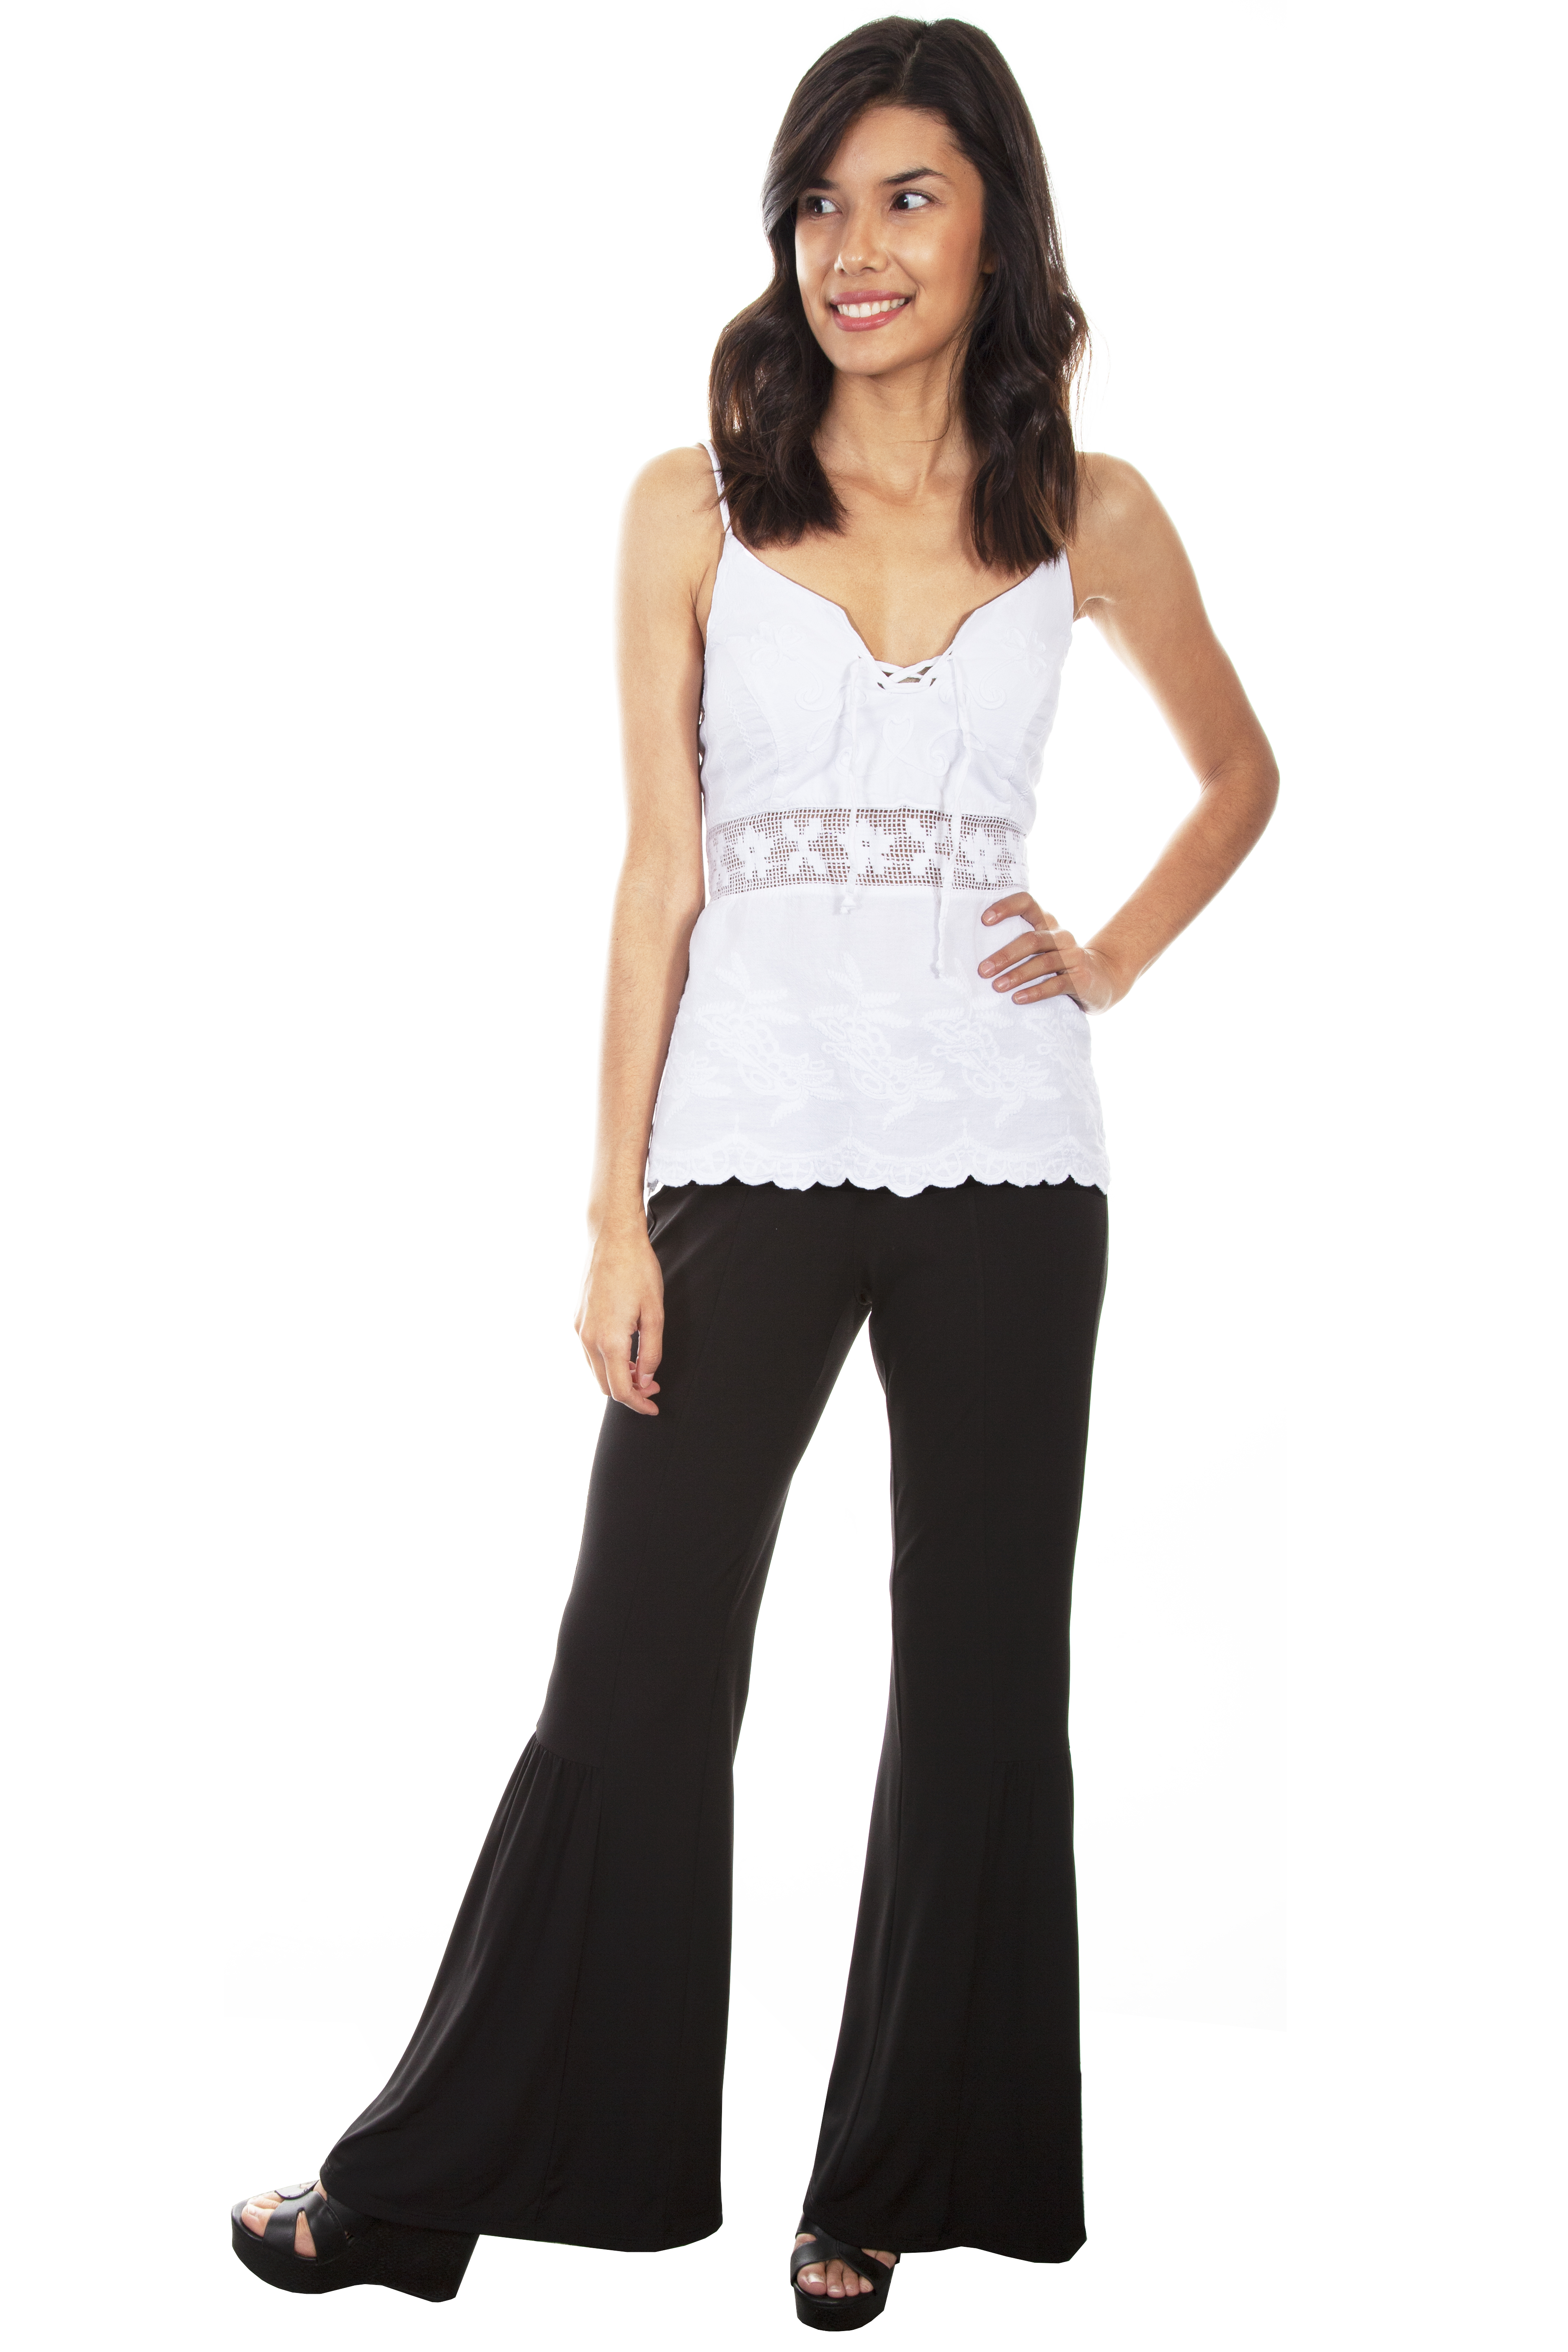 BELL BOTTOM PULL UP PANT